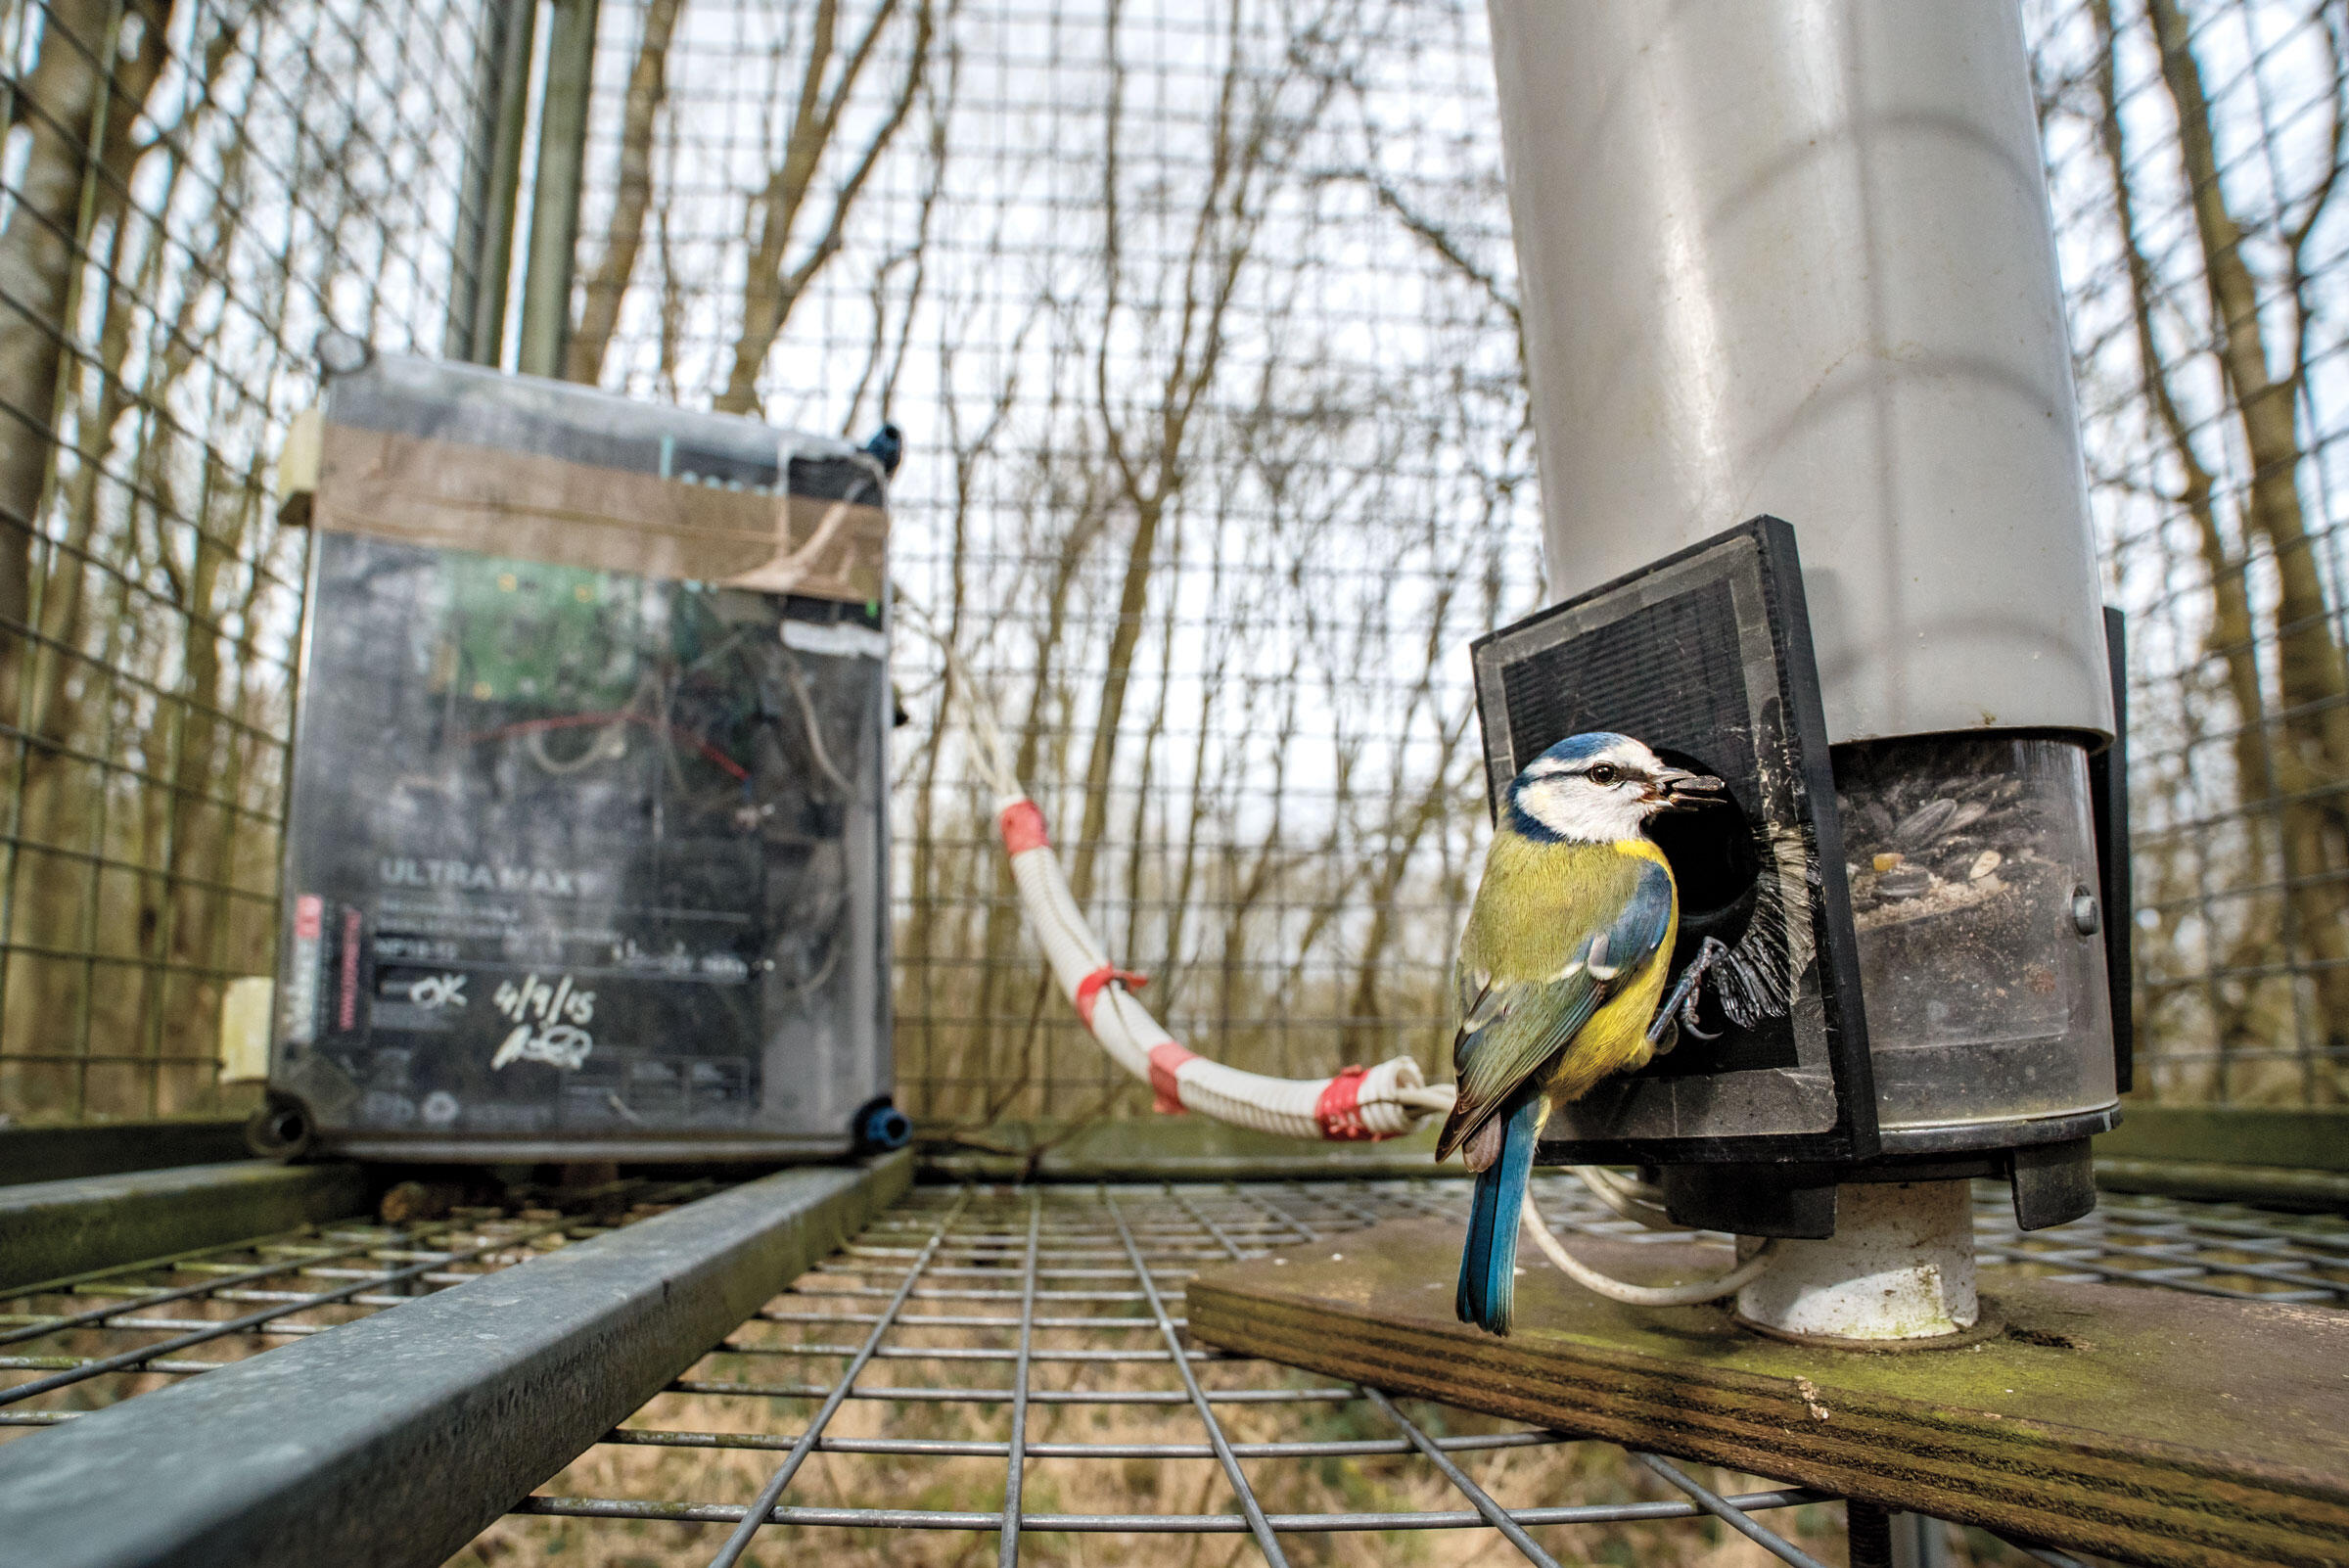 A Blue Tit near Oxford University in England perches on a selective feeder that unlocks only for certain tagged birds. A micro-SD card housed in a slot in the circuit board stores data about which birds visit. Sam Hobson